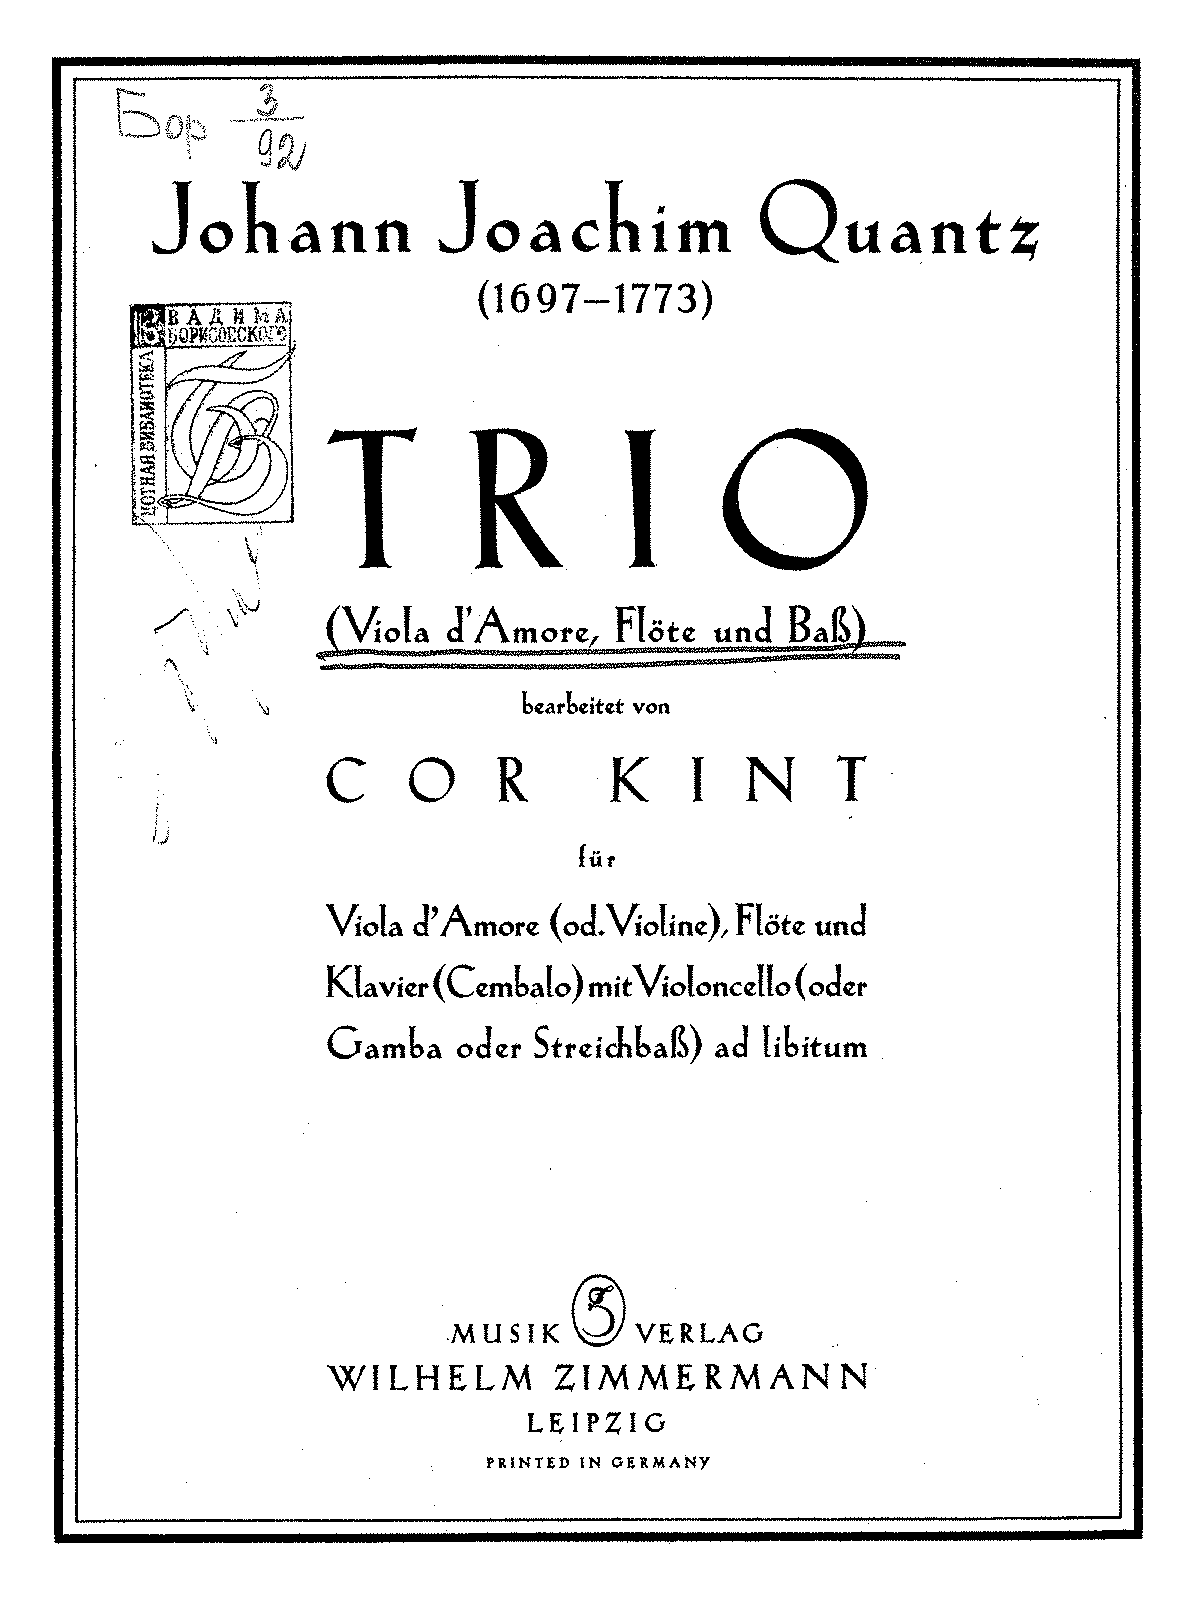 PMLP75024-Quantz - Trio (Kint) for Viola d'Amore (or Violin) Flute and Piano and cello ad lib.pdf